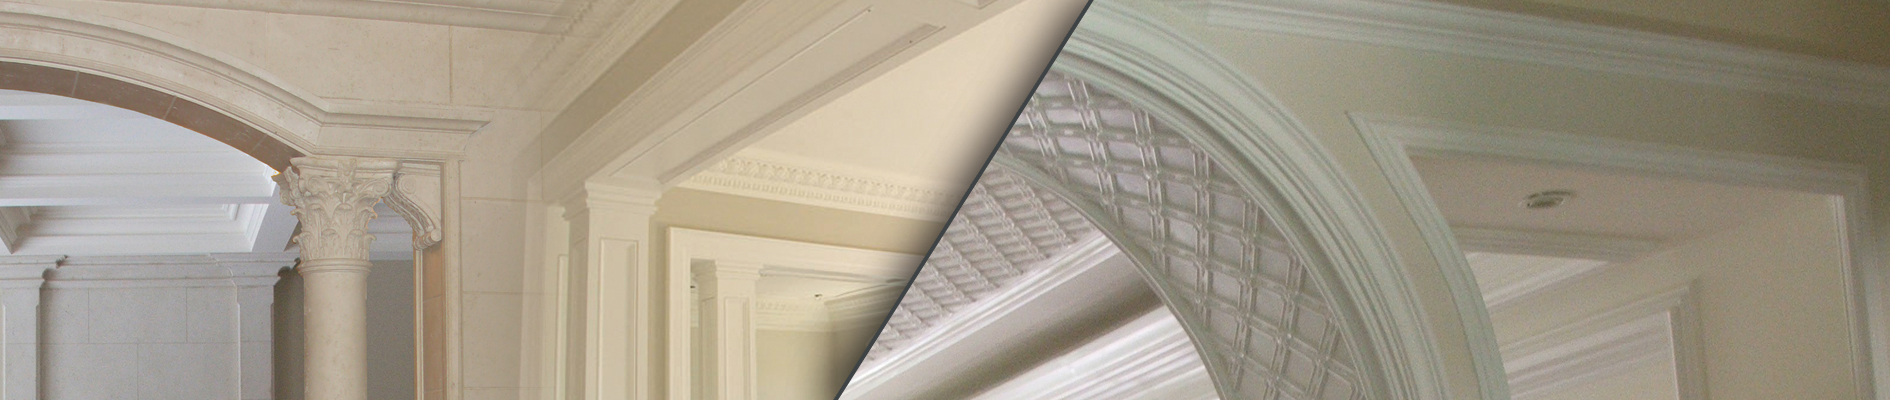 Decorative Cornice